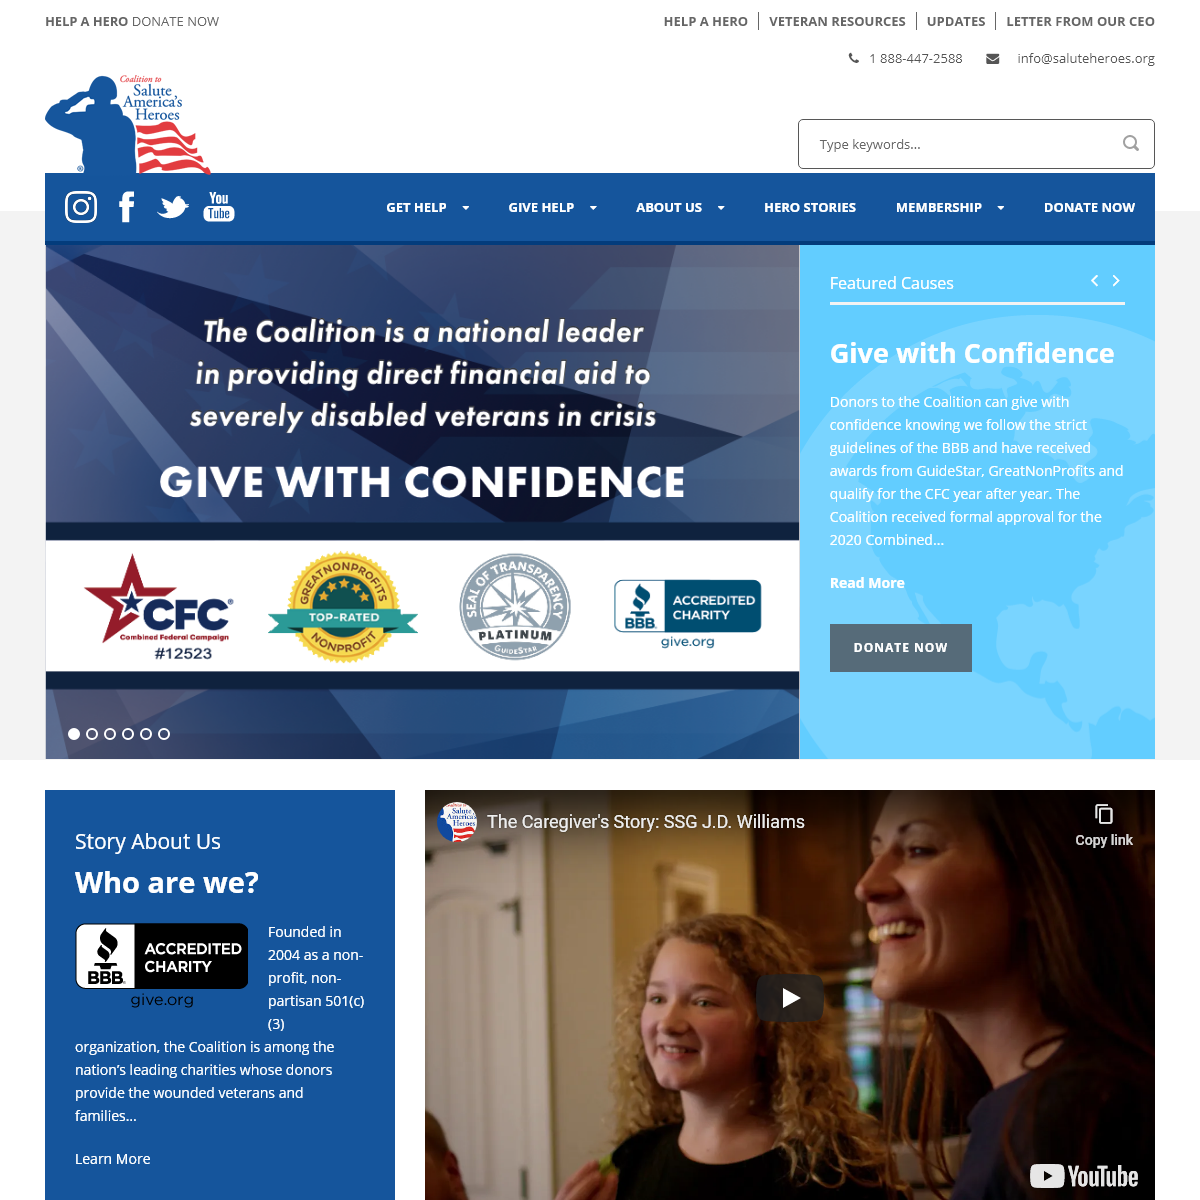 Wounded Veteran Organization - Coalition to Salute America's Heroes